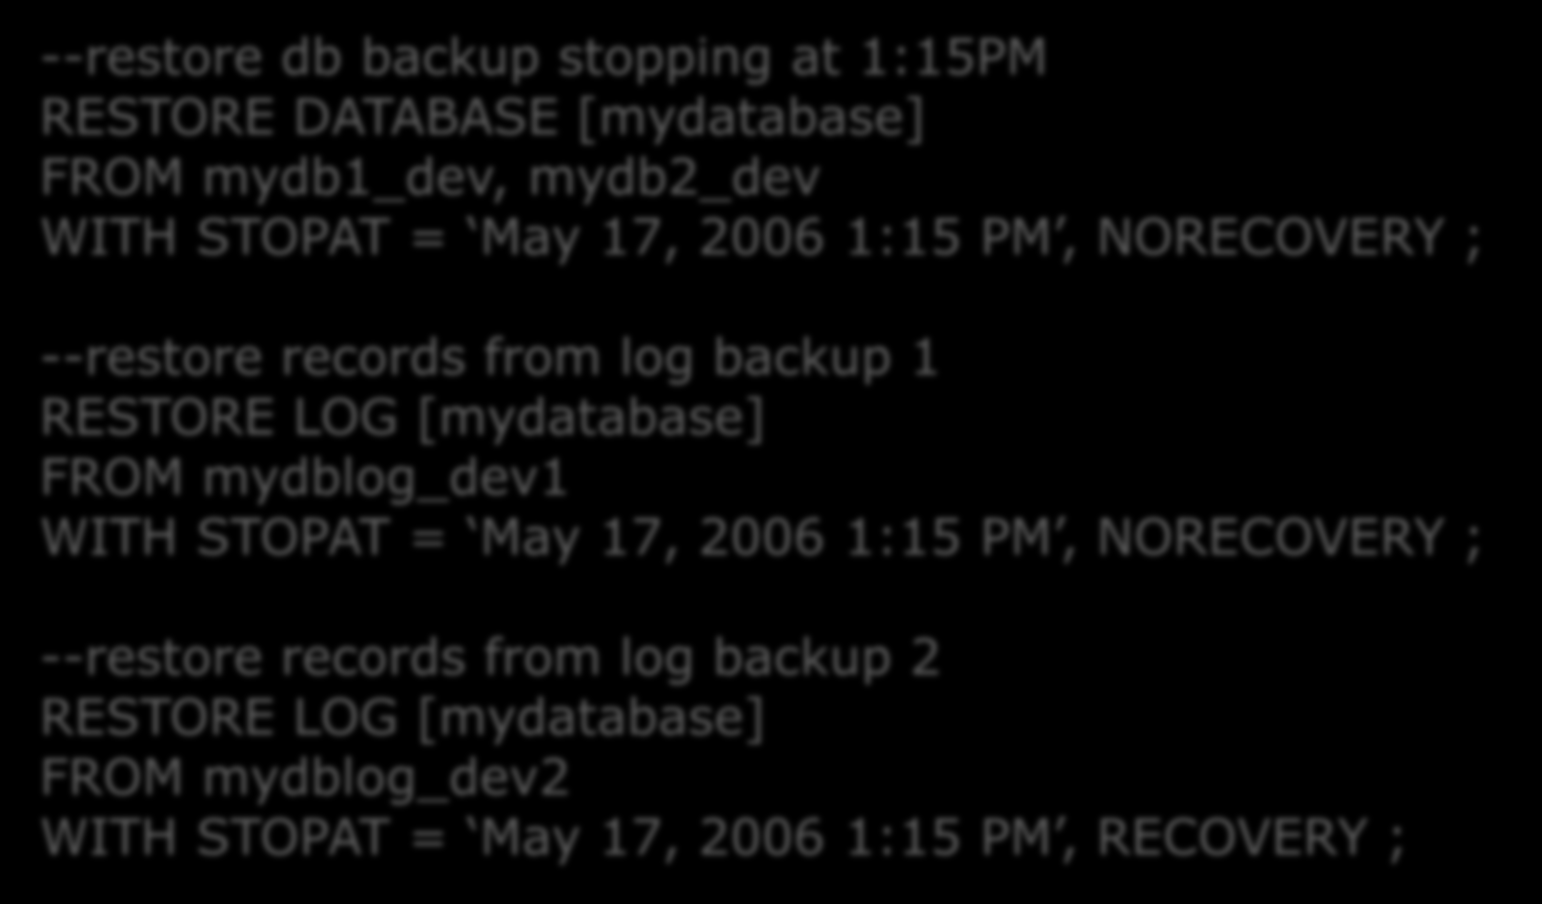 Herhangi bir Zamana Dönmek --restore db backup stopping at 1:15PM RESTORE DATABASE [mydatabase] FROM mydb1_dev, mydb2_dev WITH STOPAT = May 17, 2006 1:15 PM, NORECOVERY ; --restore records from log